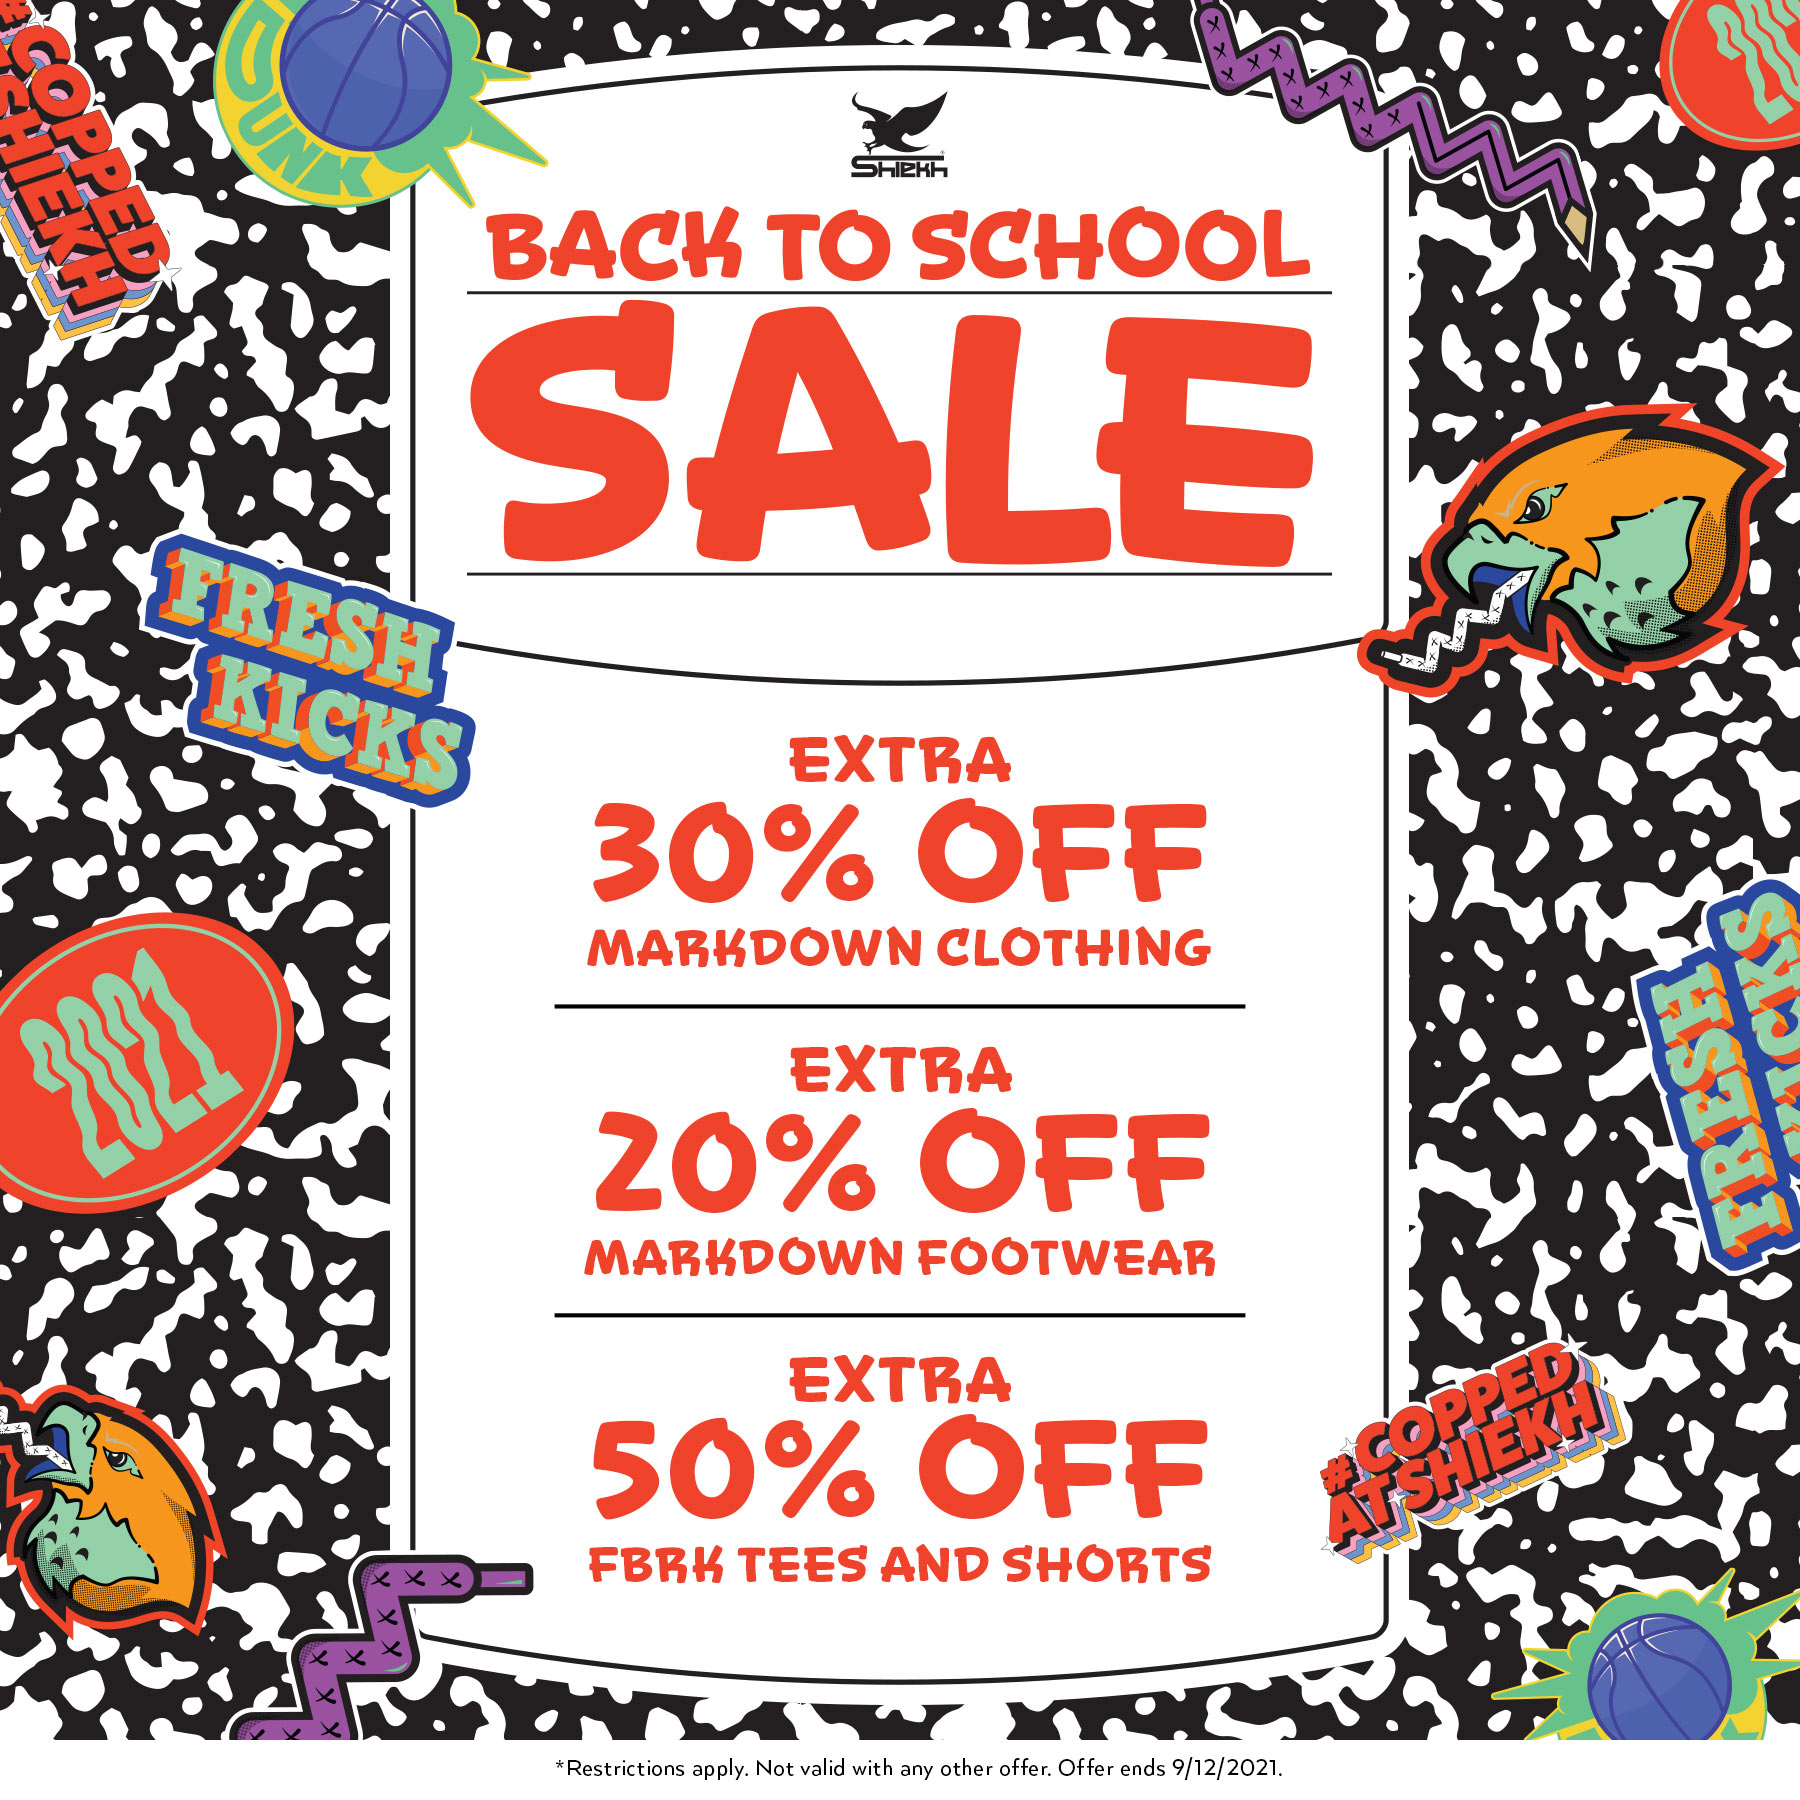 Back to school sale from Shiekh